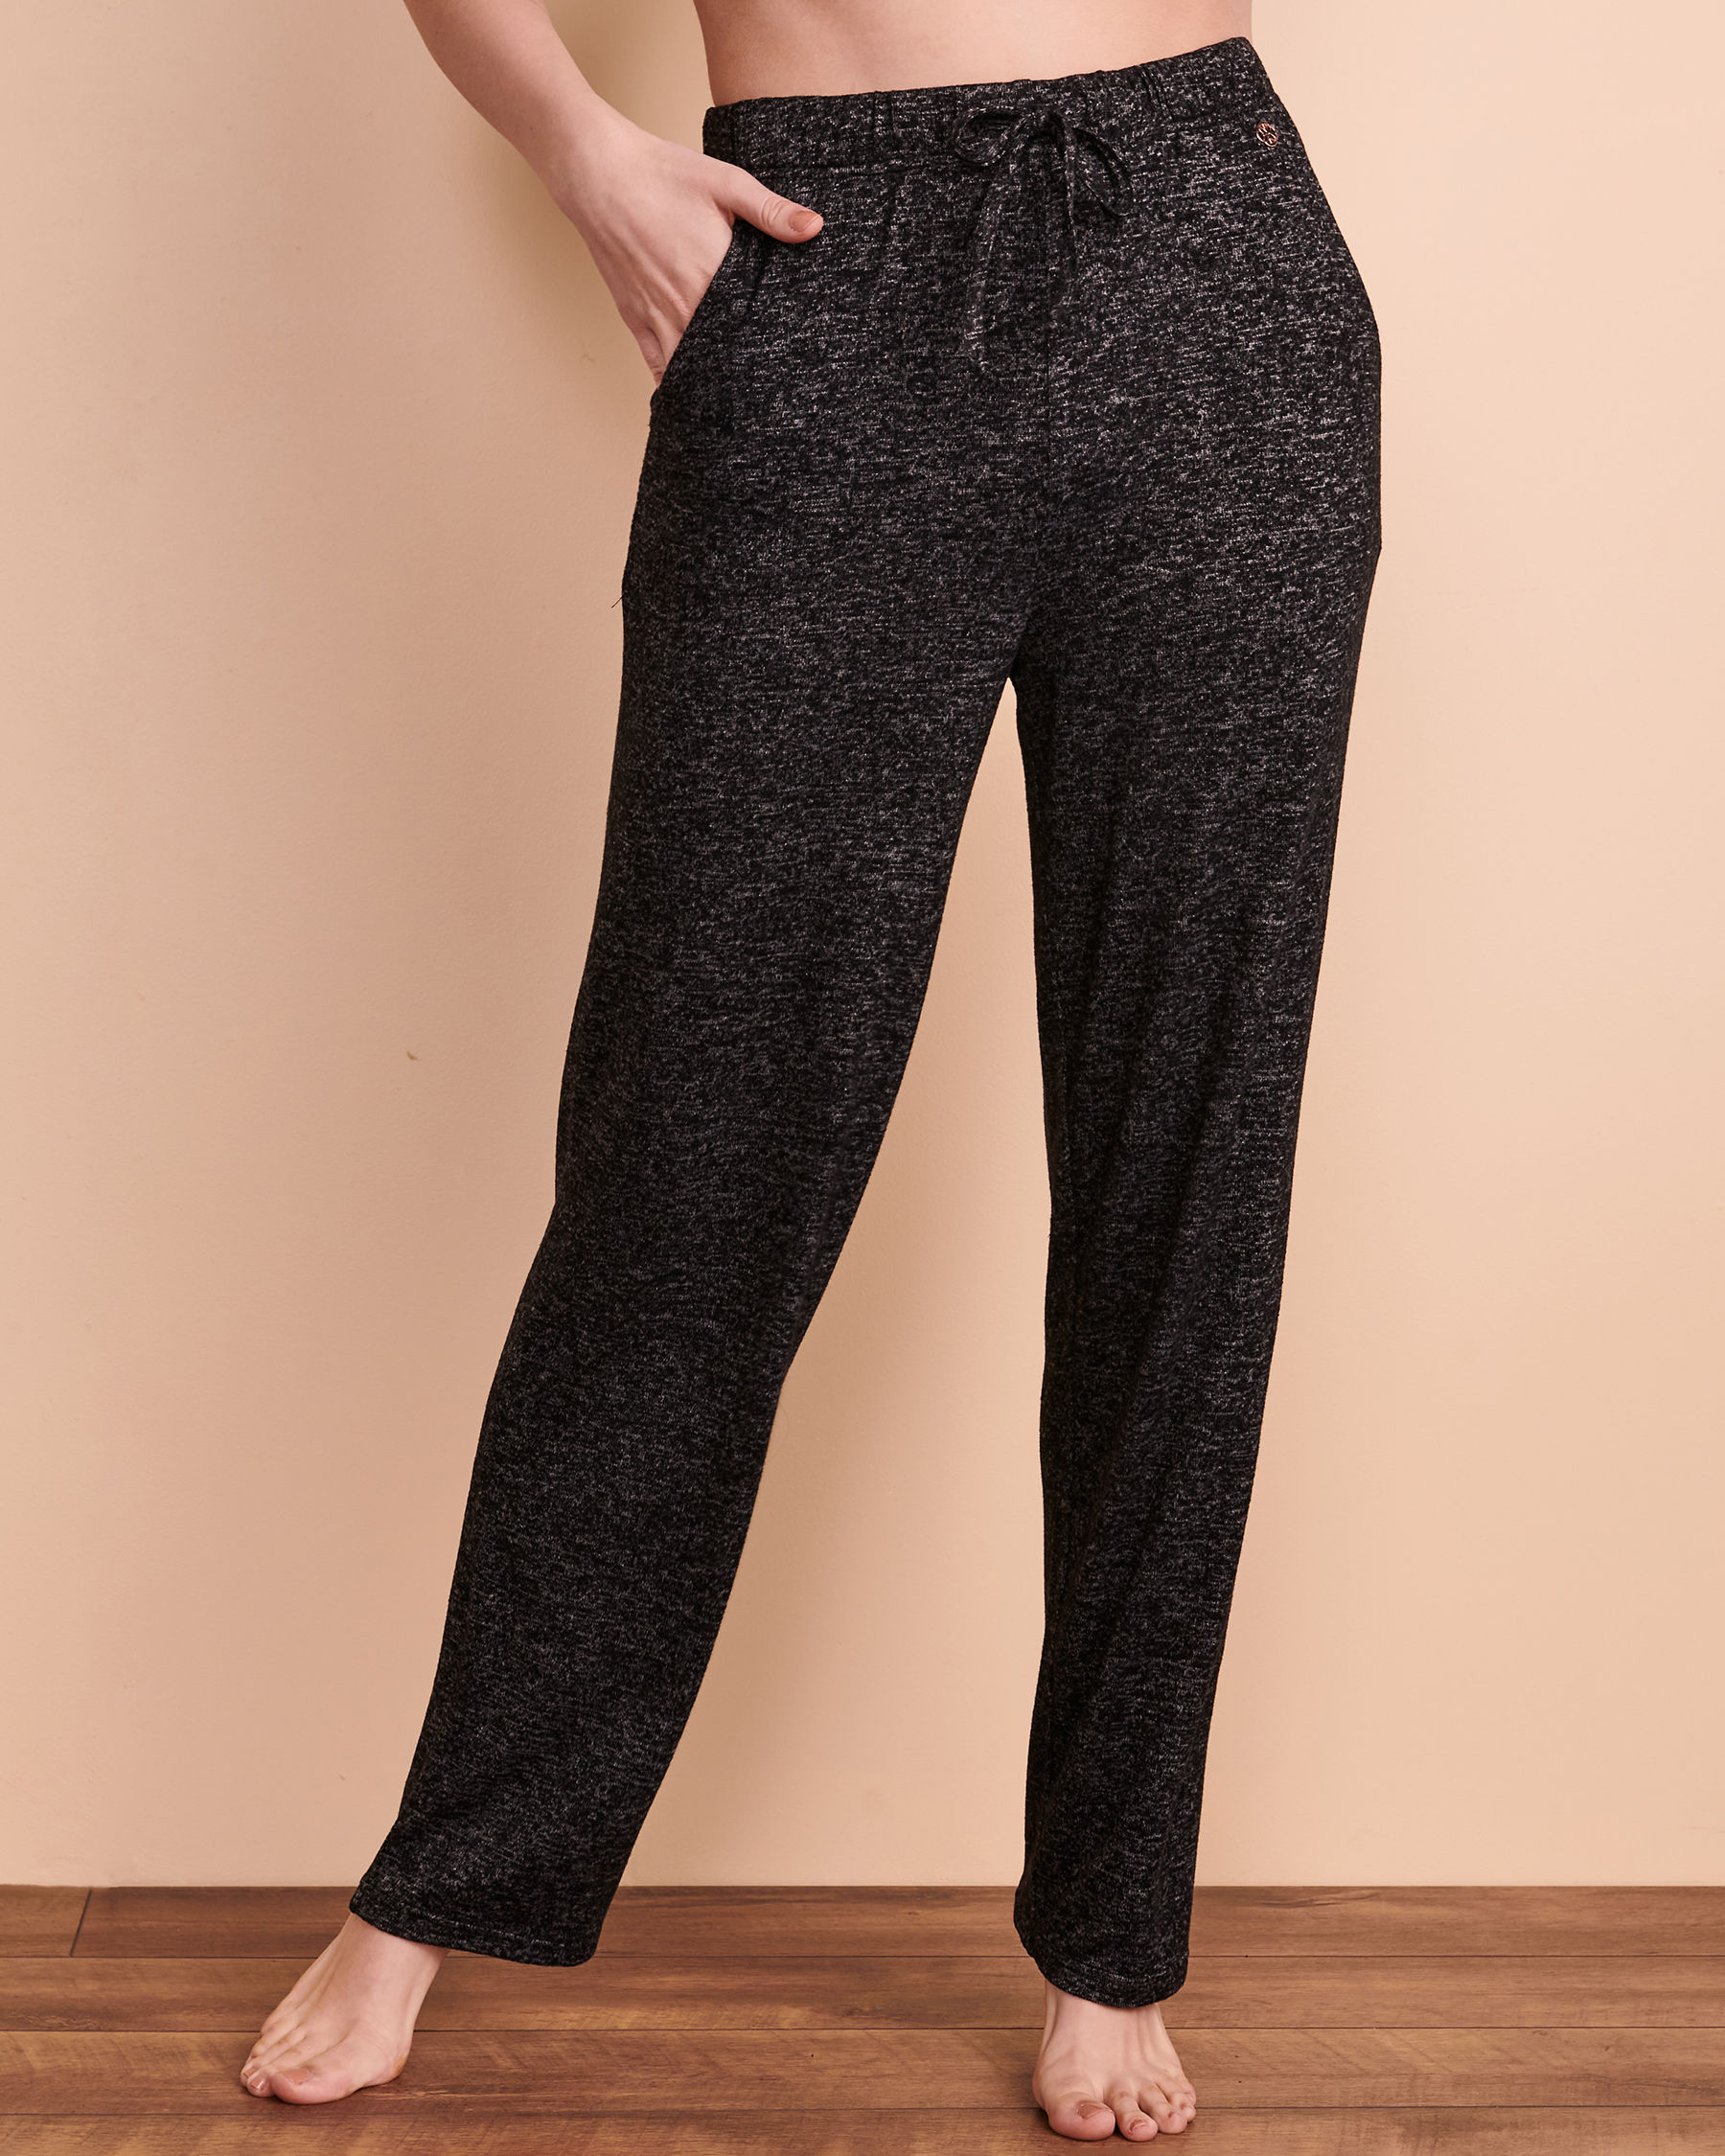 TURQUOISE COUTURE Wide Leg Lounge Pant Black 02200011 - View1